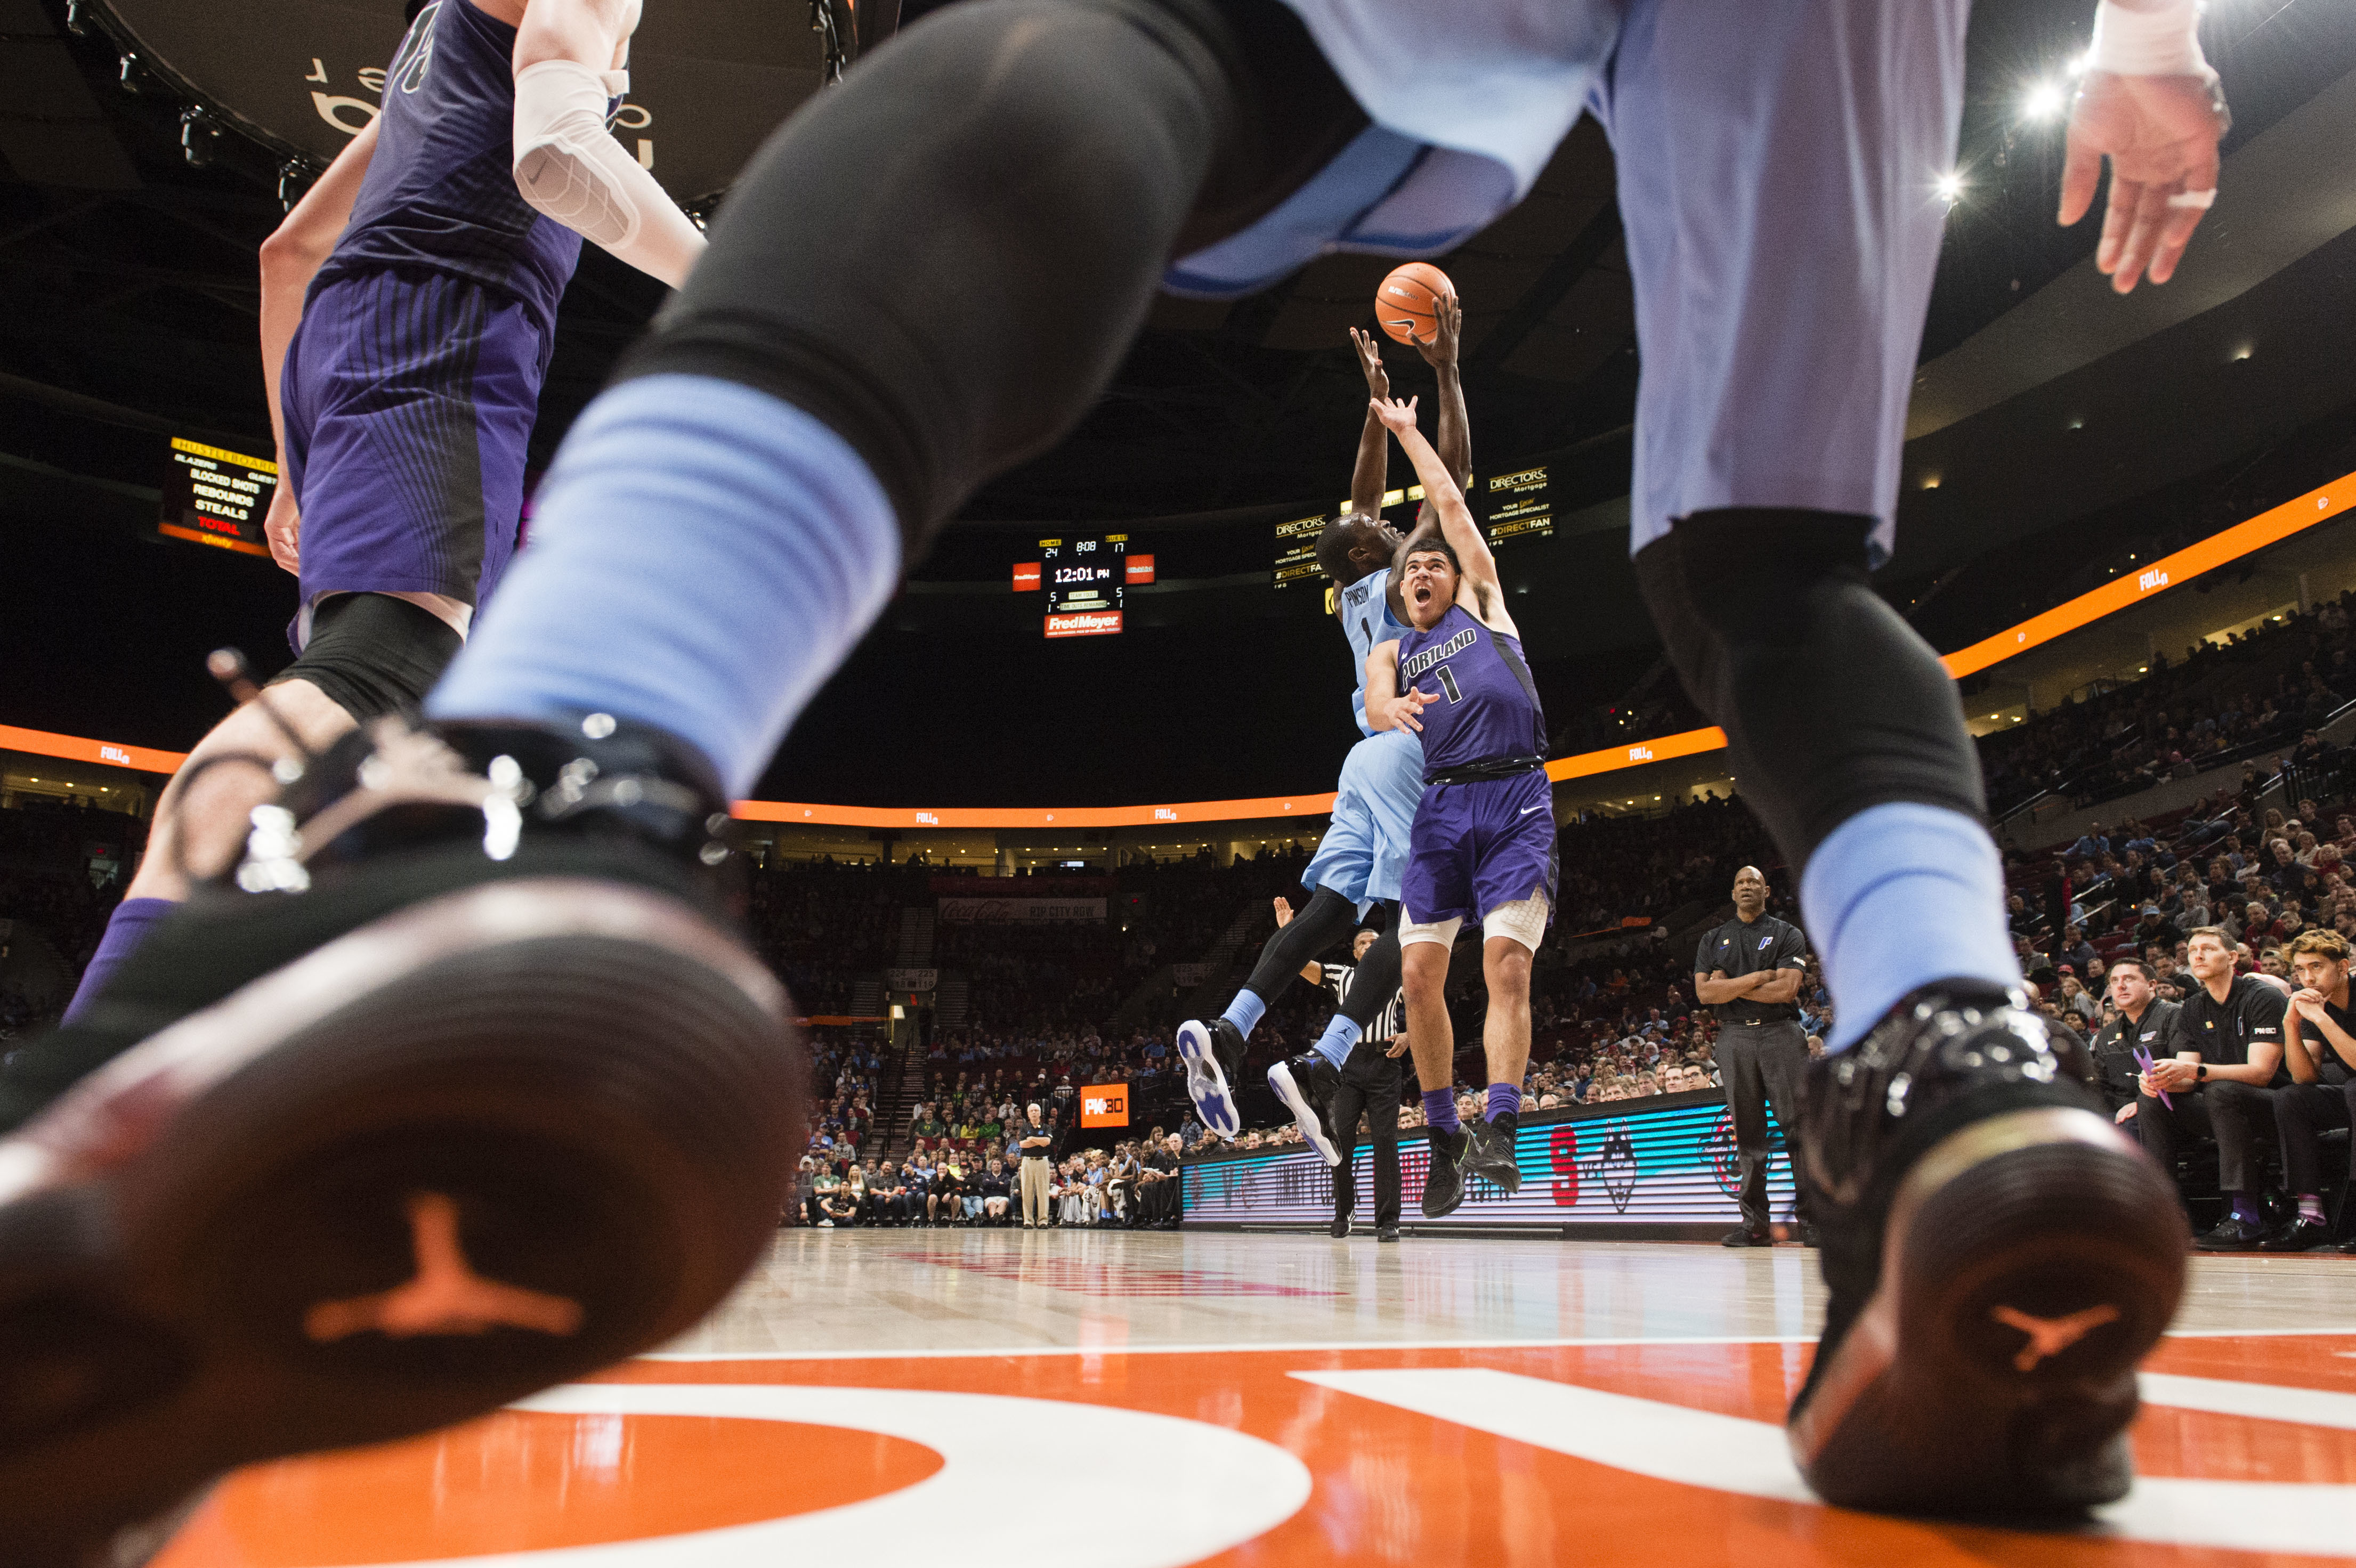 North Carolina forward Theo Pinson, left, and Portland guard Malcolm Porter, right, battle for an inbound pass during the first half in an NCAA college basketball game at the Phil Knight Invitation Tournament, in Portland, Ore., Thursday, Nov. 23, 2017. (AP Photo/Troy Wayrynen)